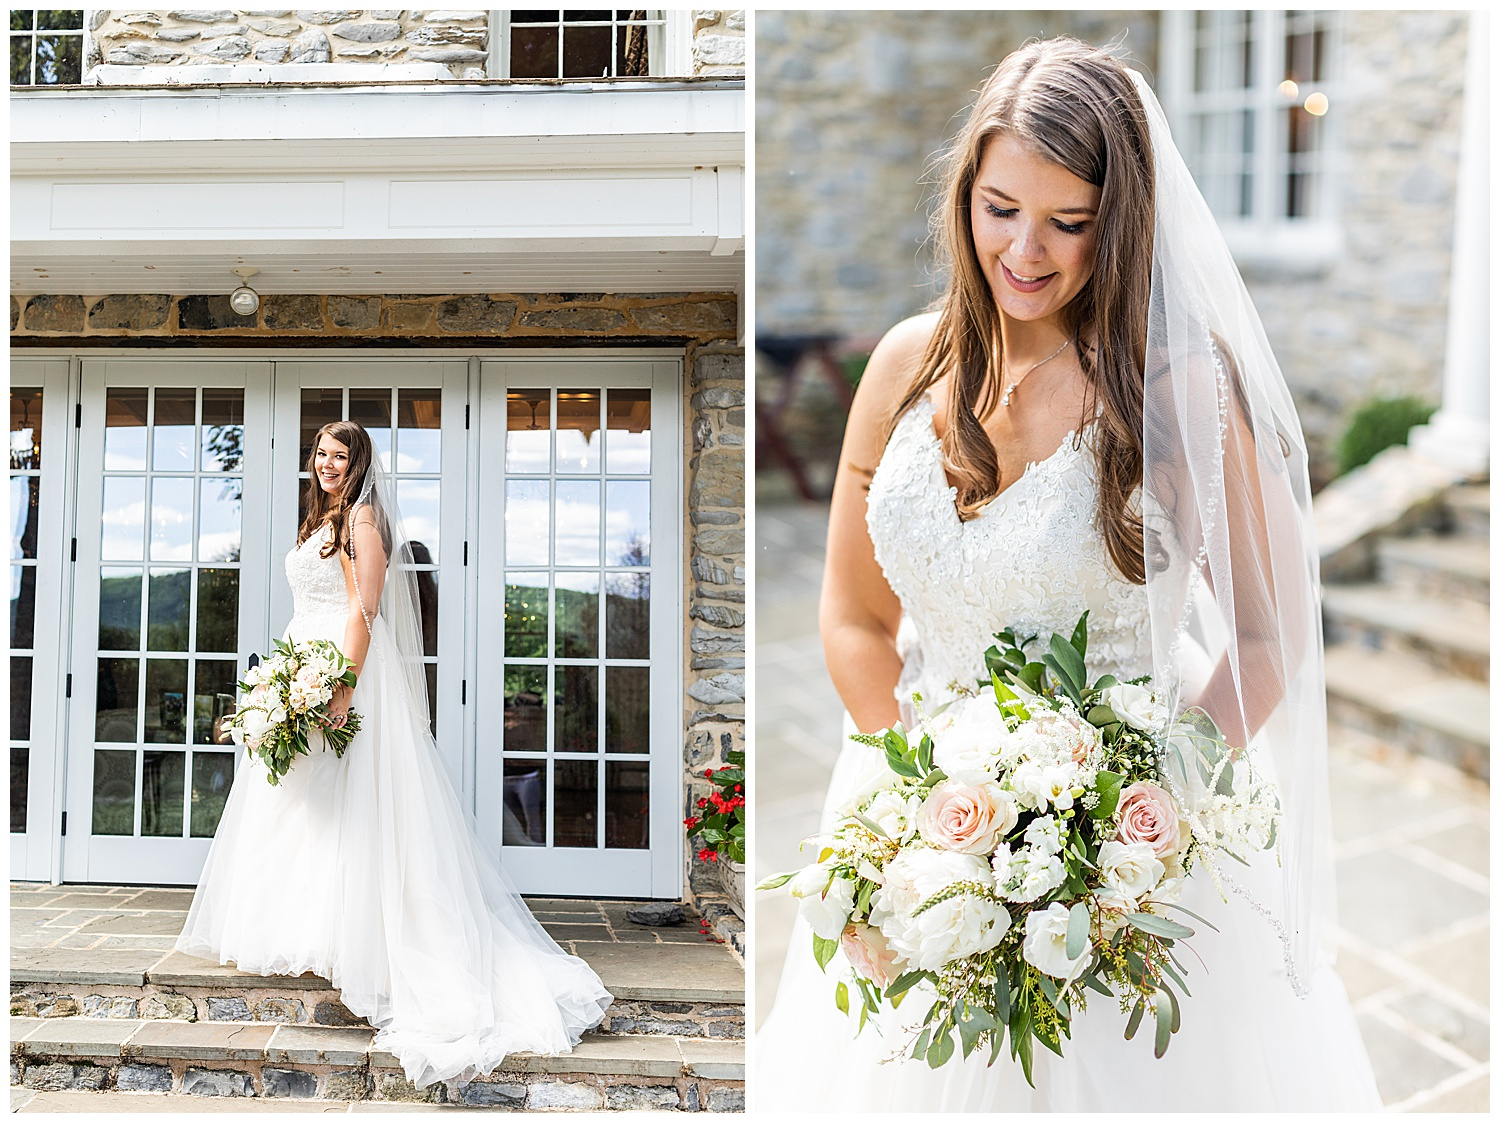 Brittany + Darryl Linwood Estate Wedding Living Radiant Photography photos_0058.jpg